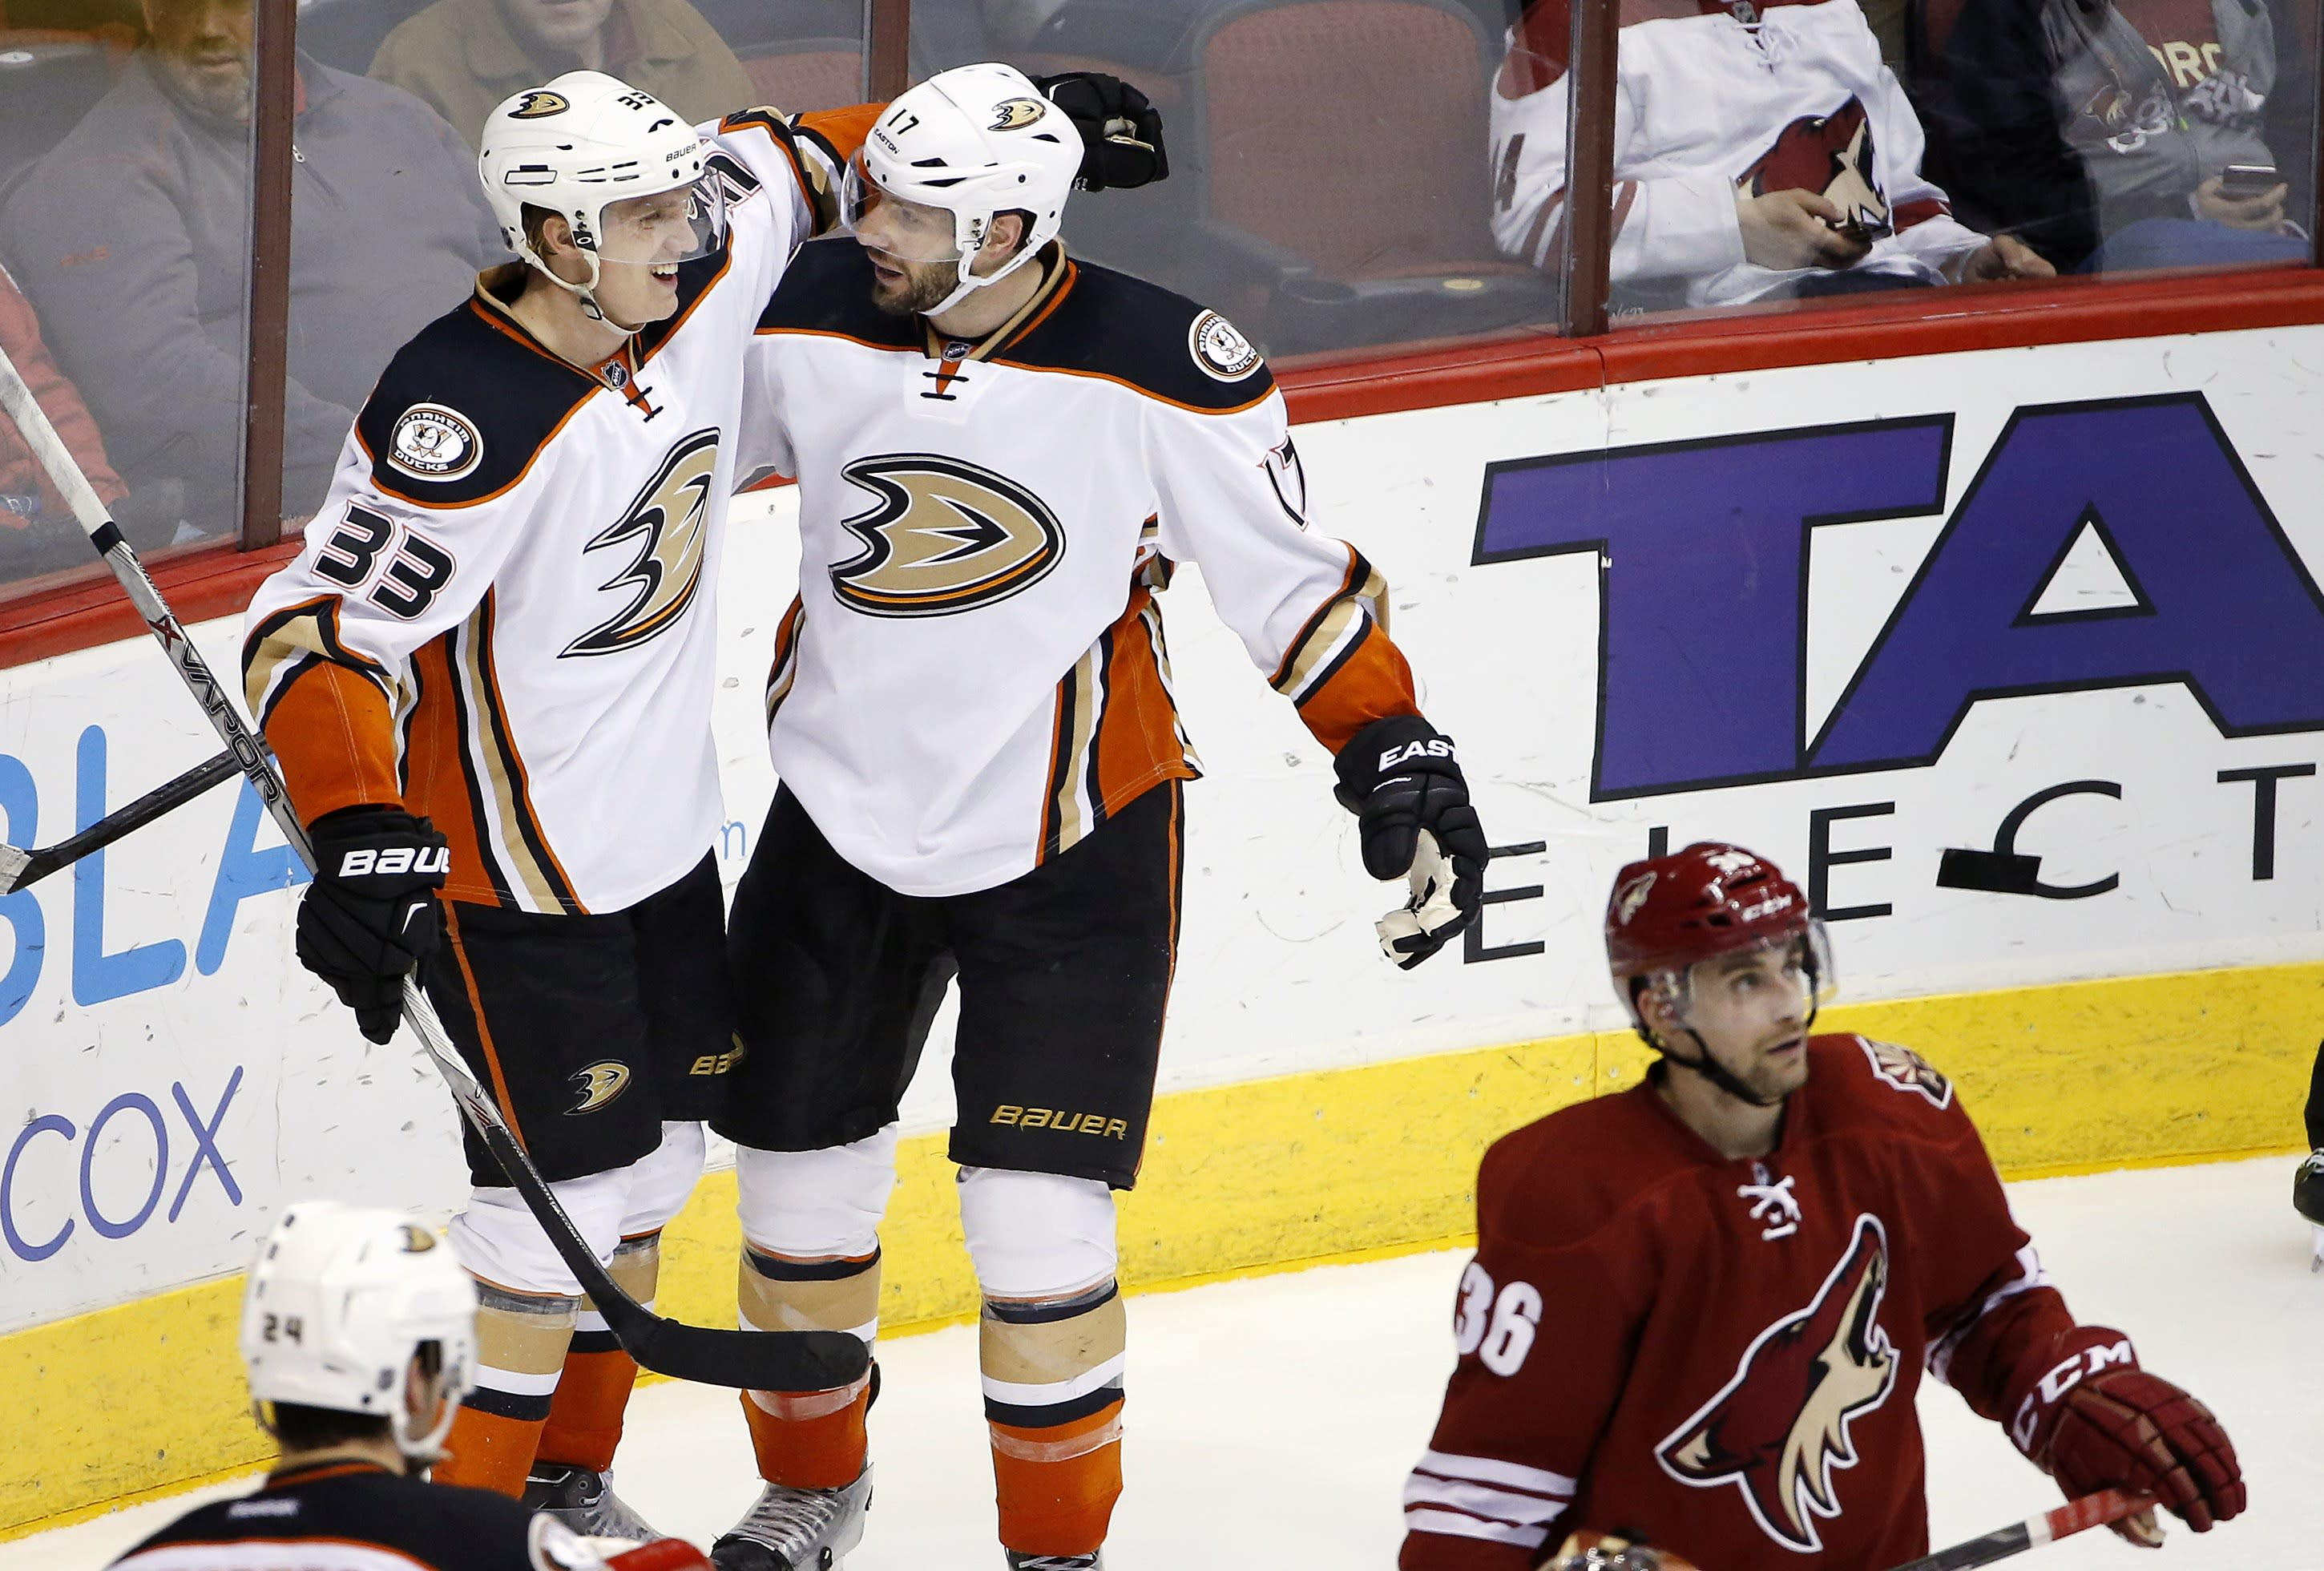 Cogliano scores 2, lifts Ducks over Coyotes 4-1